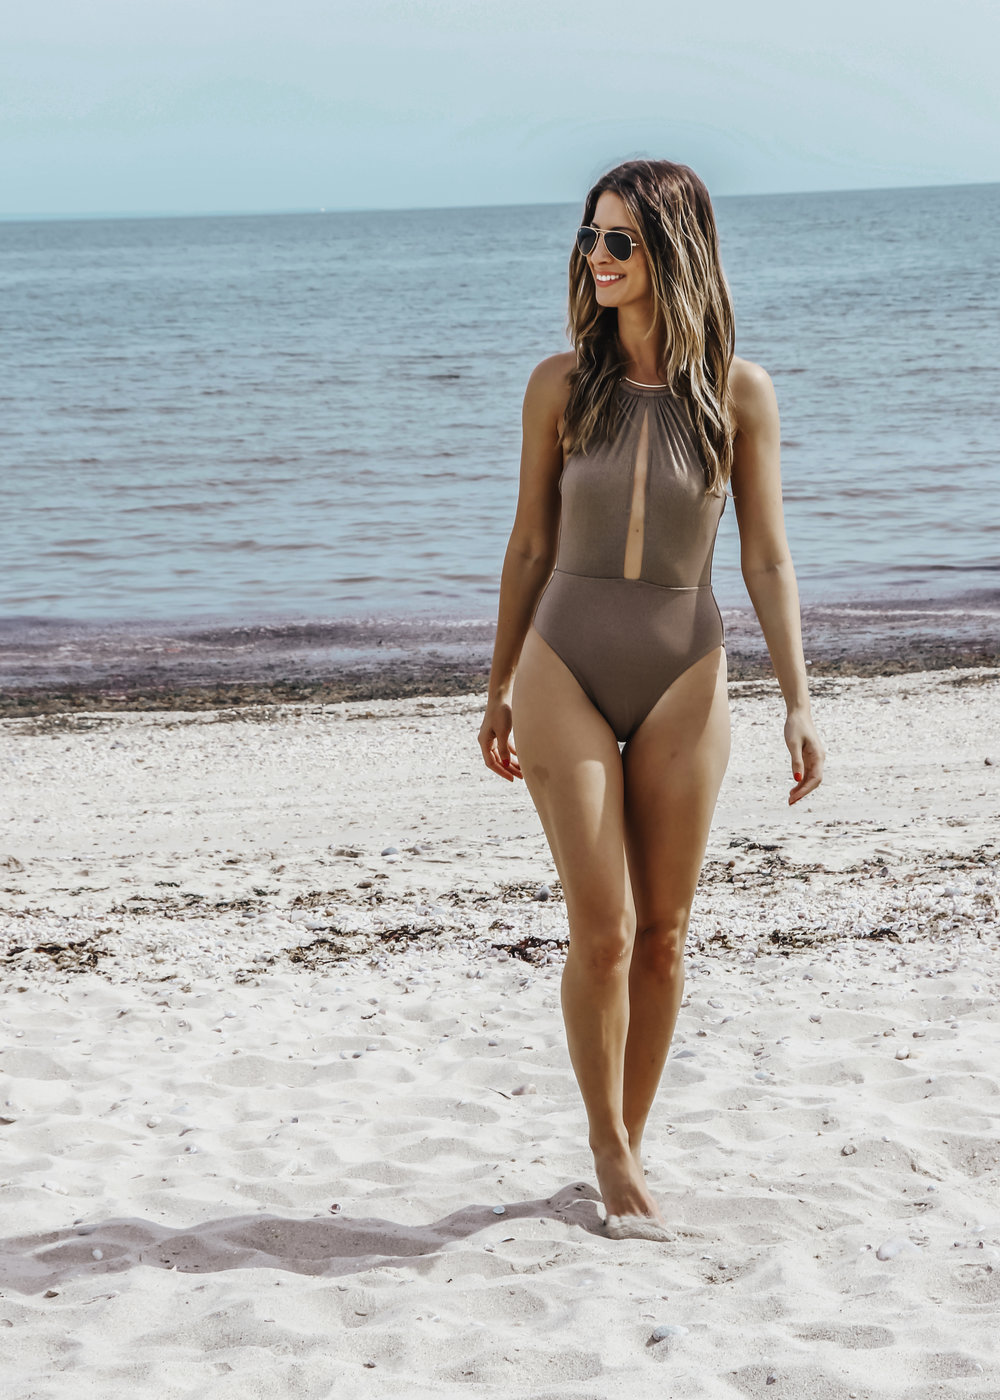 gold bathing suit final 2.jpg